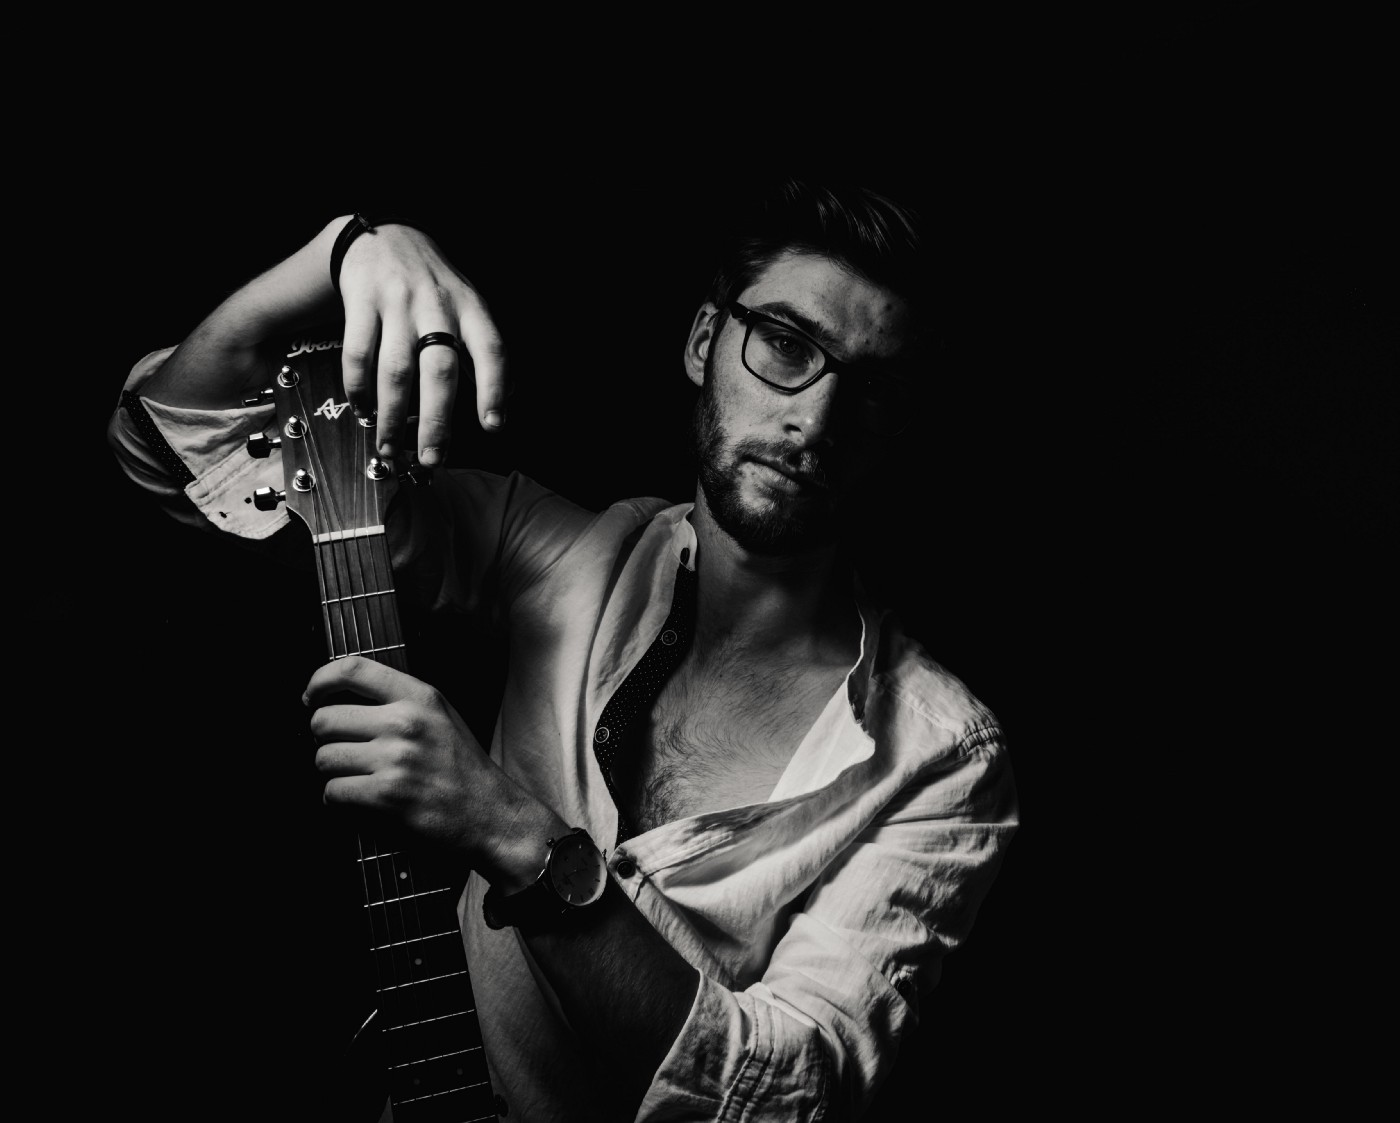 A man with an unbuttoned shirt, glasses and a beard holds a guitar